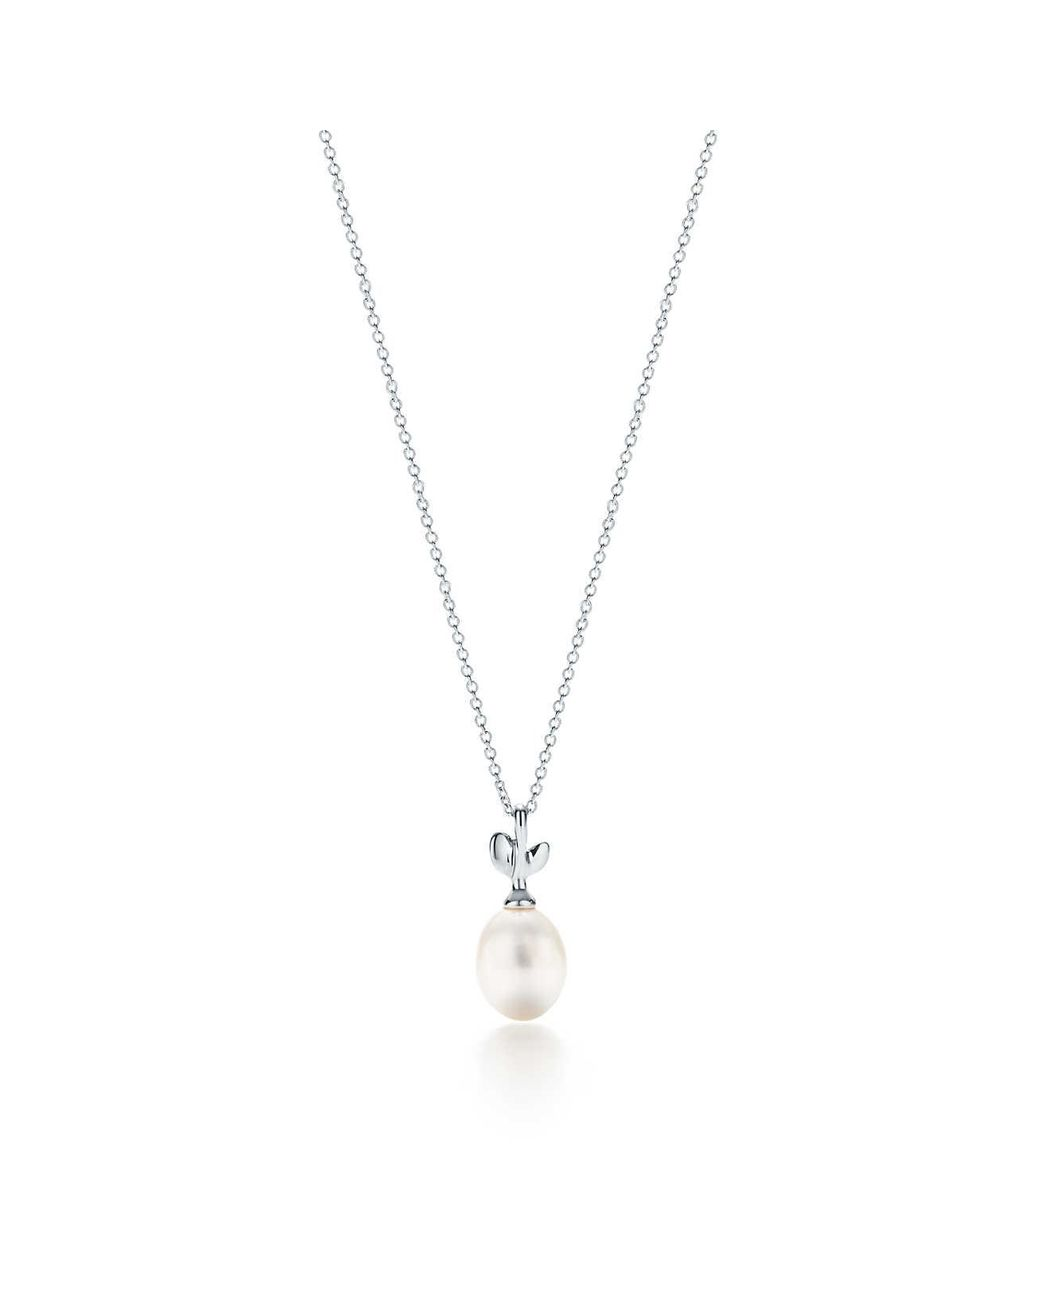 cf01b94c2 Tiffany & Co. Paloma Picasso® Olive Leaf Pendant In Sterling Silver With A  Cultured Pearl in Green - Lyst